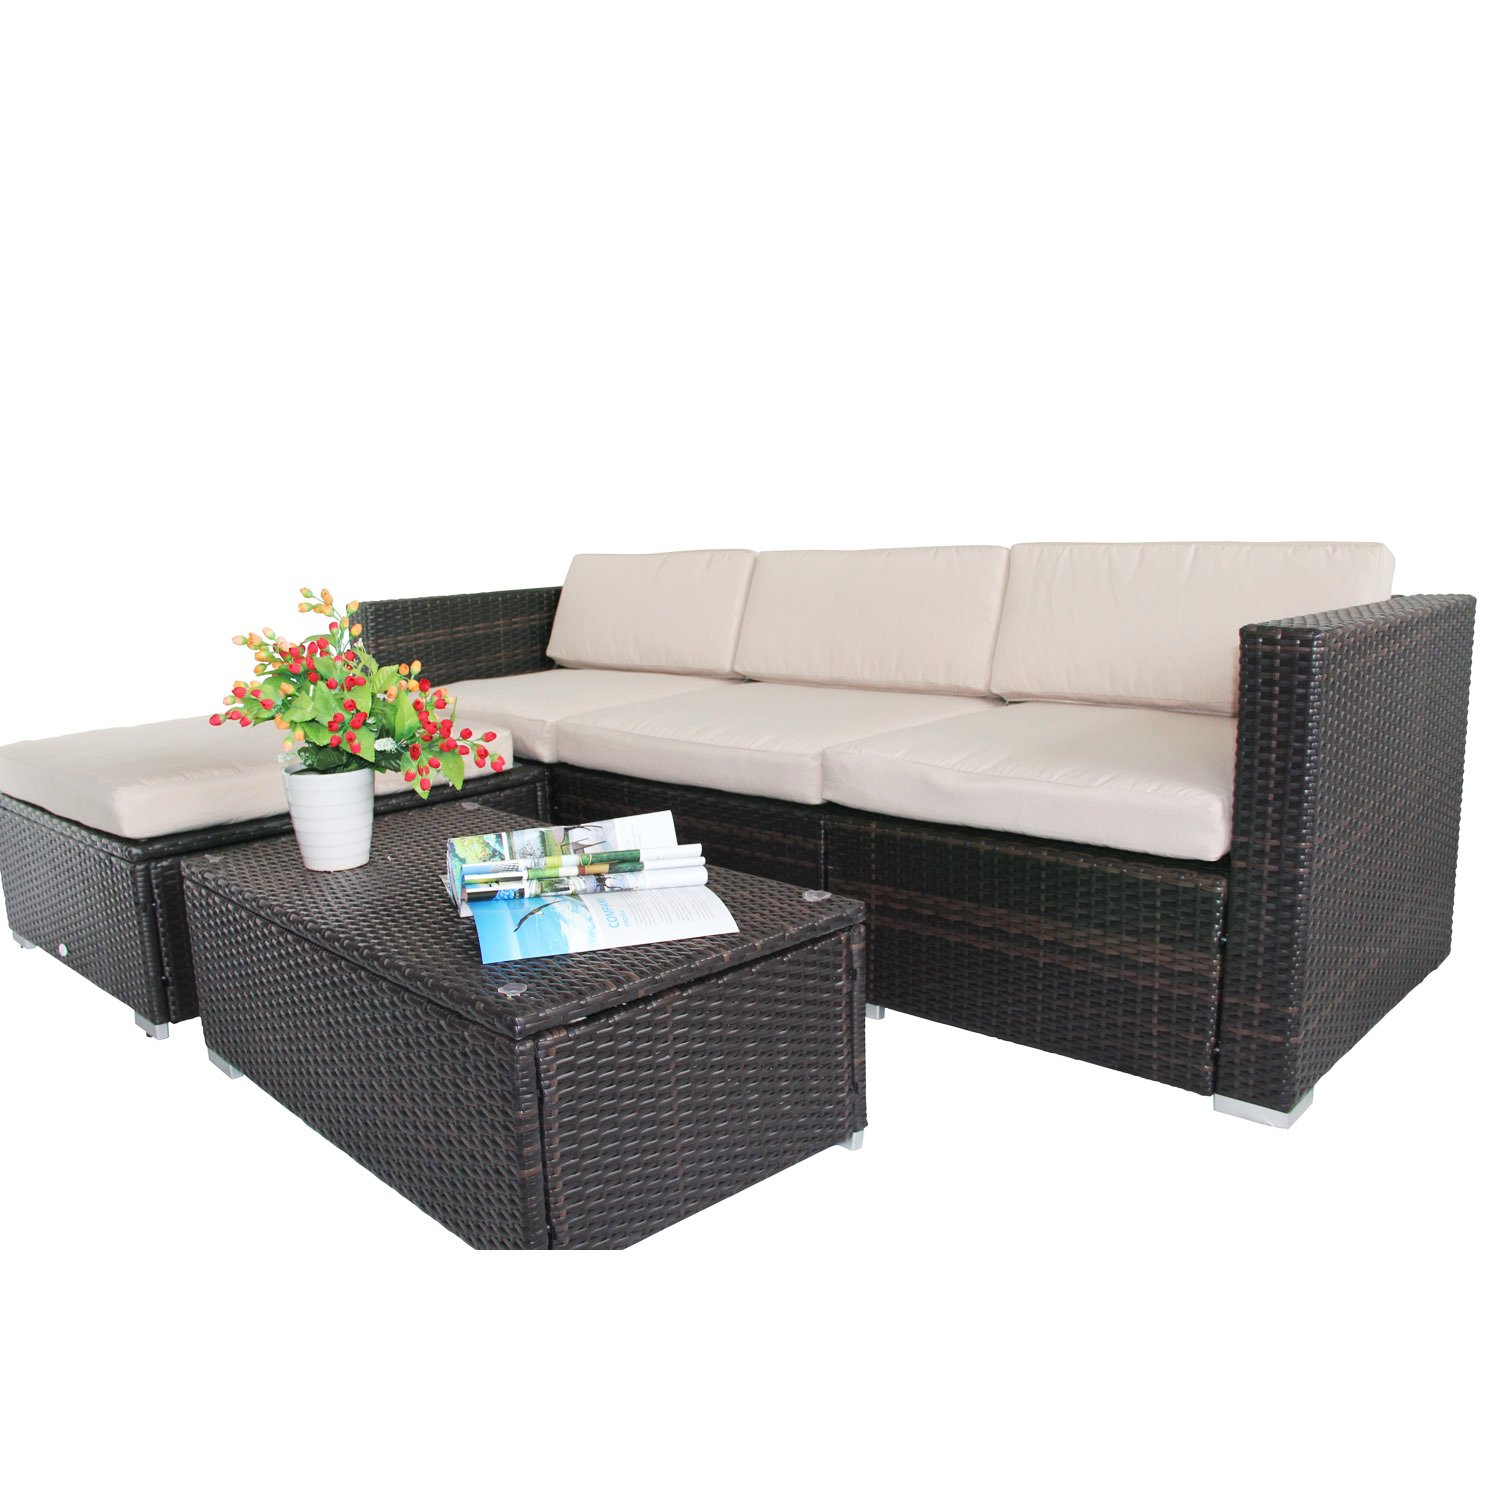 outsunny rattan garden wicker patio furniture cushion cover sofa